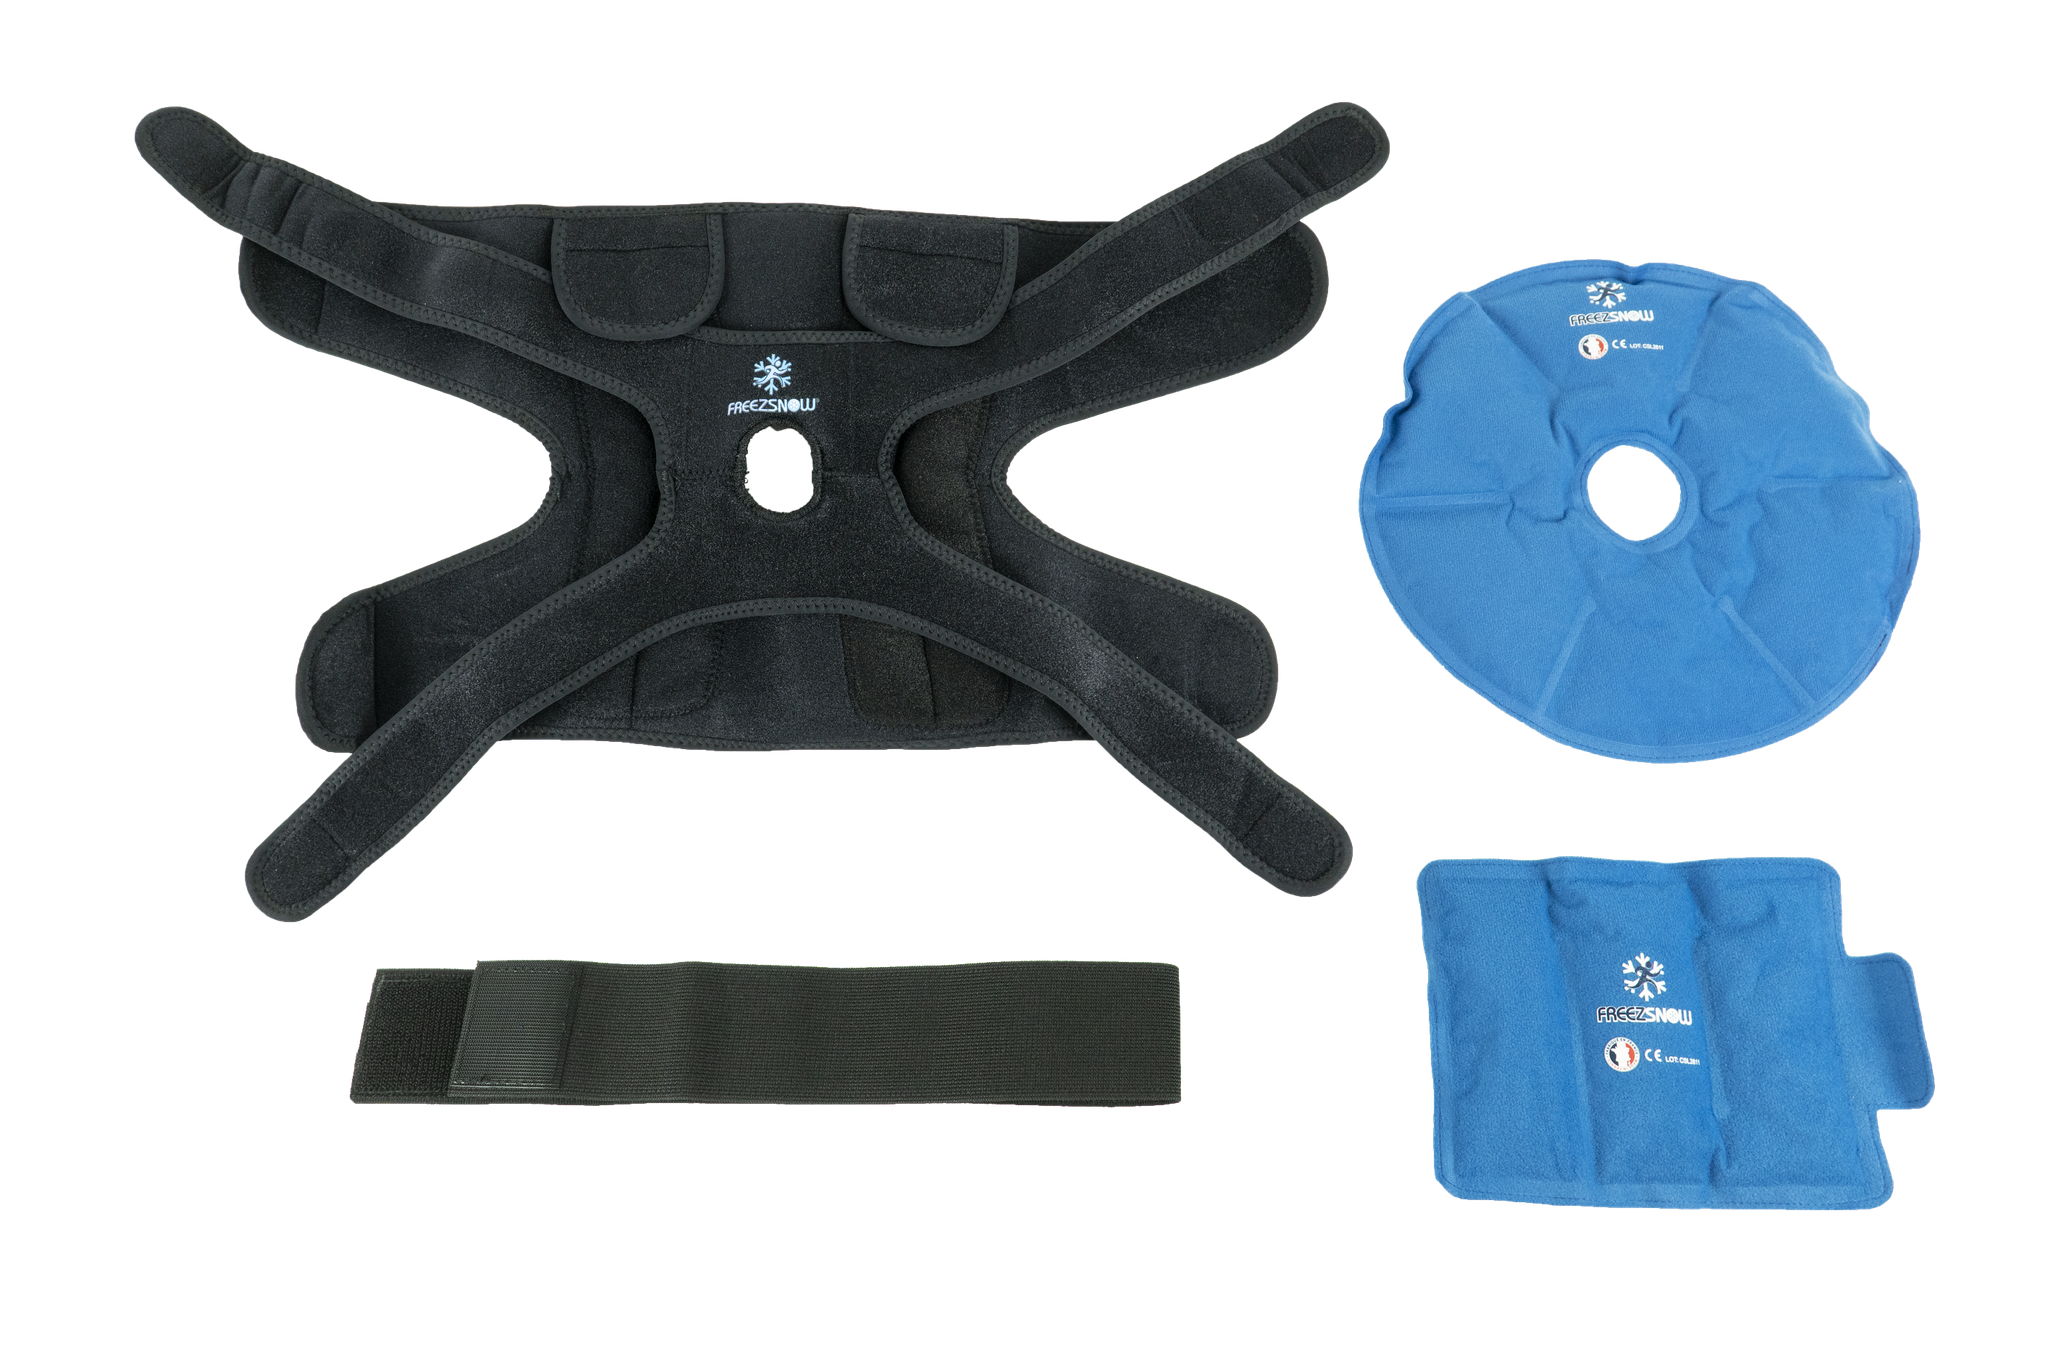 The brace is supplied with four long-lasting Freezsnow® cold packs (including a spare set).